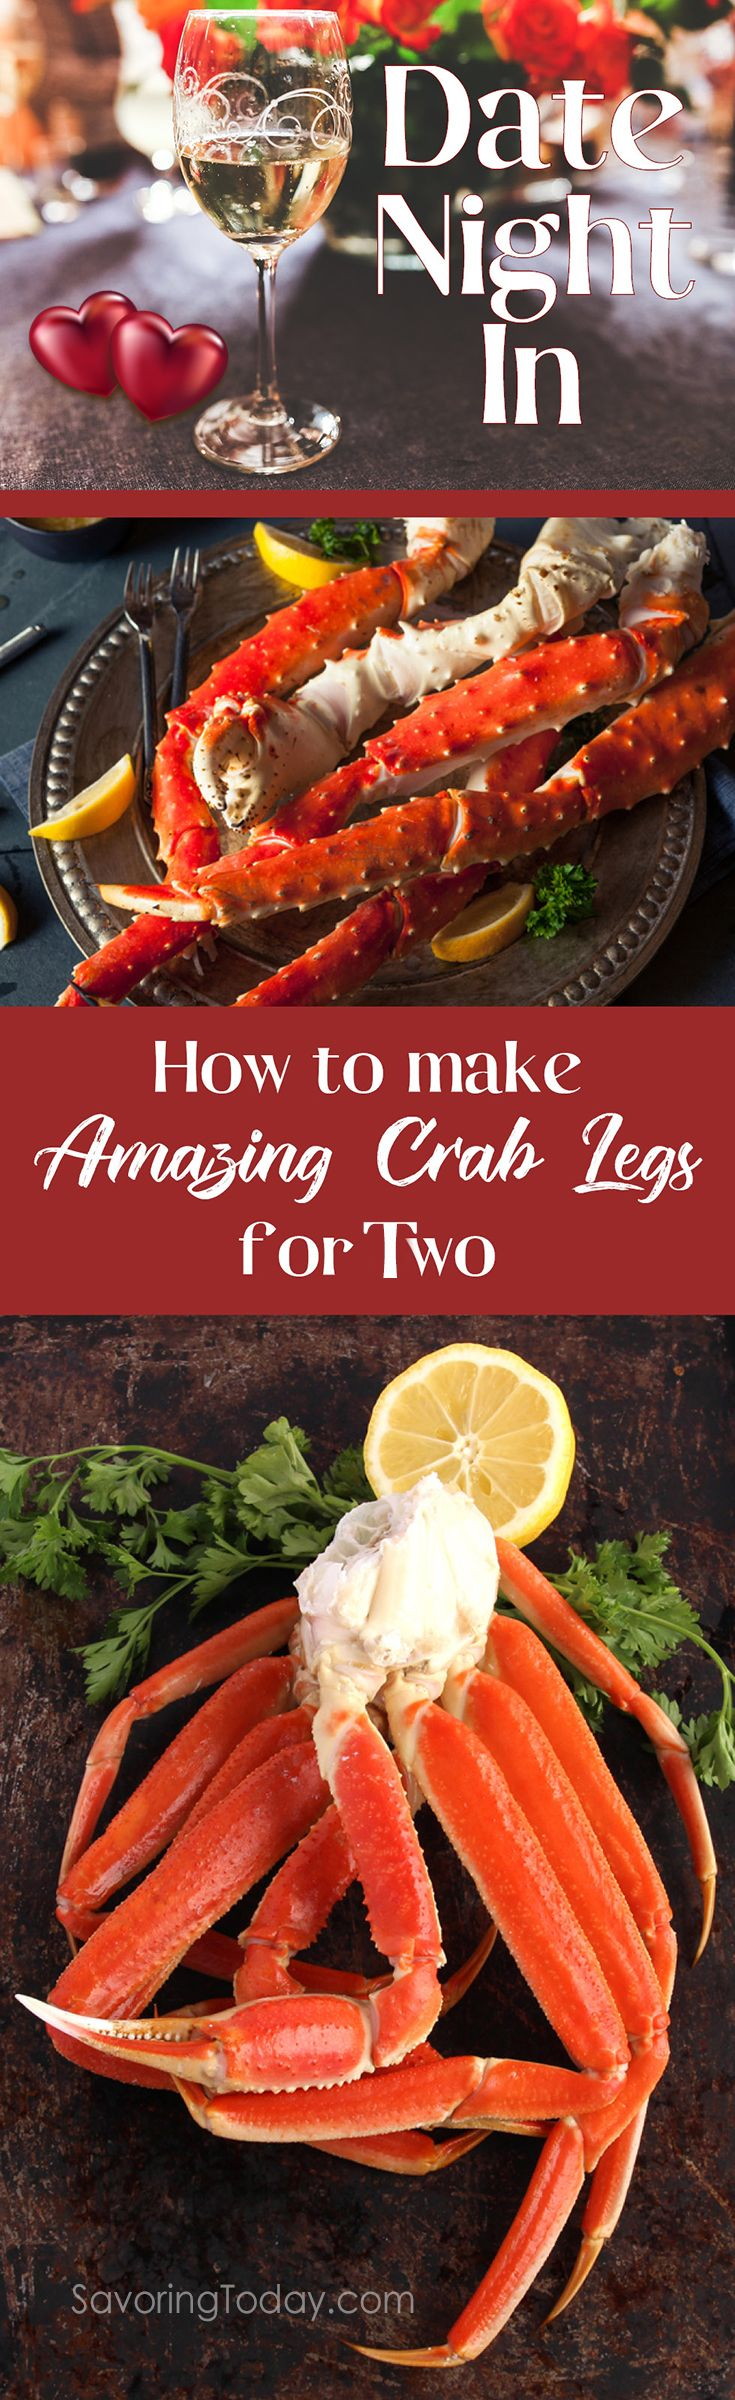 Create a memorable date night in with these tips and recipe suggestions for an Amazing Crab Legs Dinner for Two. Save time and money by making crab legs at home with helpful tips for buying, cooking, and cracking king or snow crab. Includes recommended side dishes and desserts too!